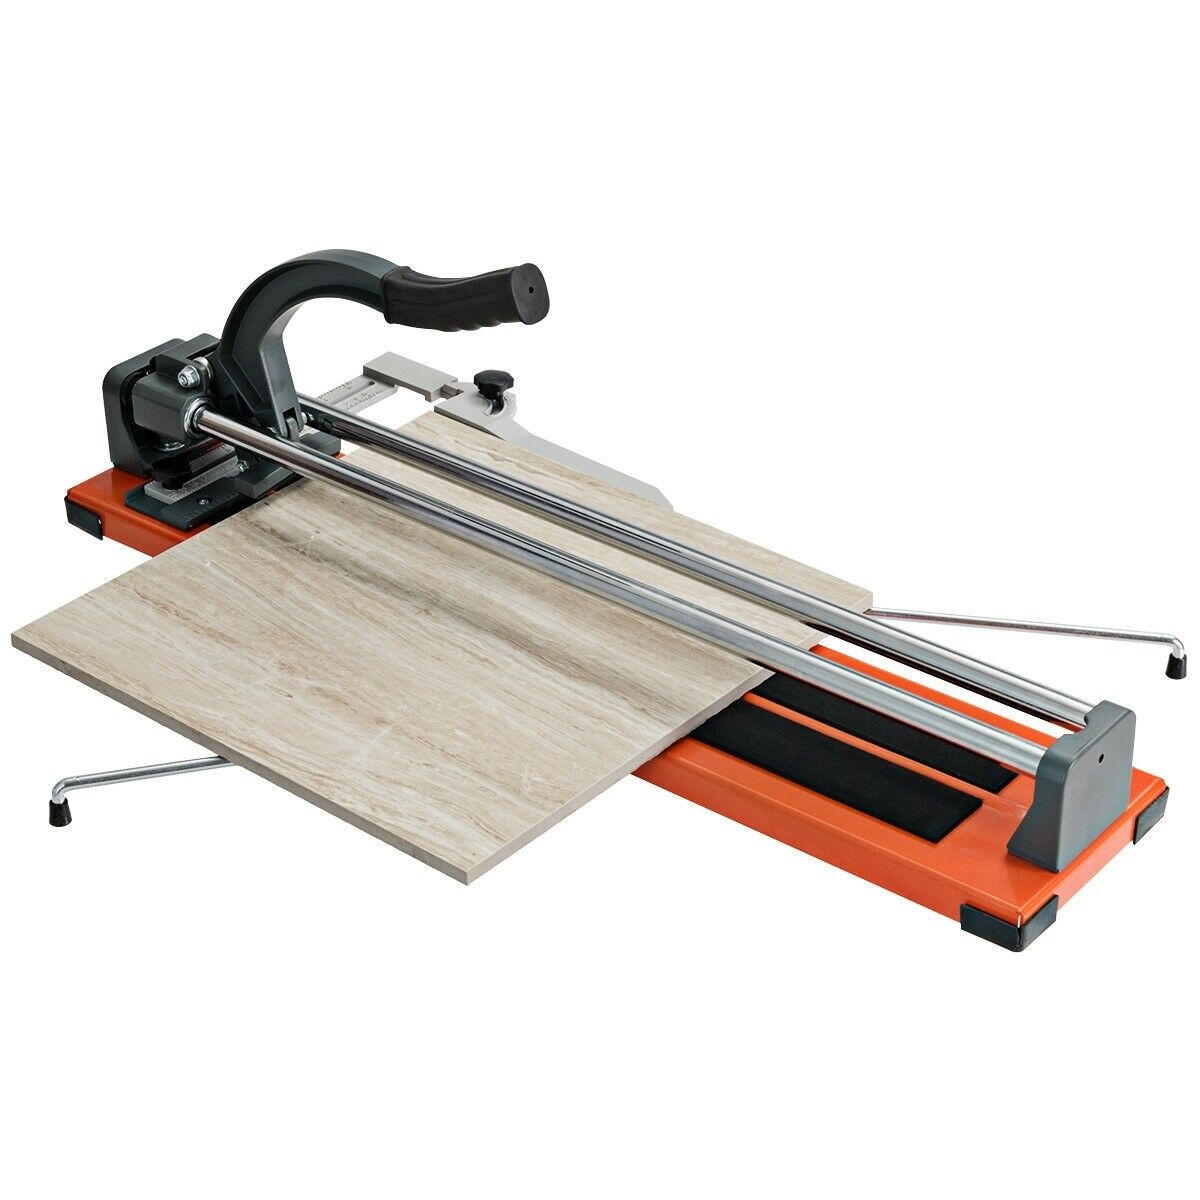 Porcelain Ceramic Manual Tile Cutter Tungsten Carbide Wheel Tile Cutter Porcelain Ceramics Types Of Ceramics